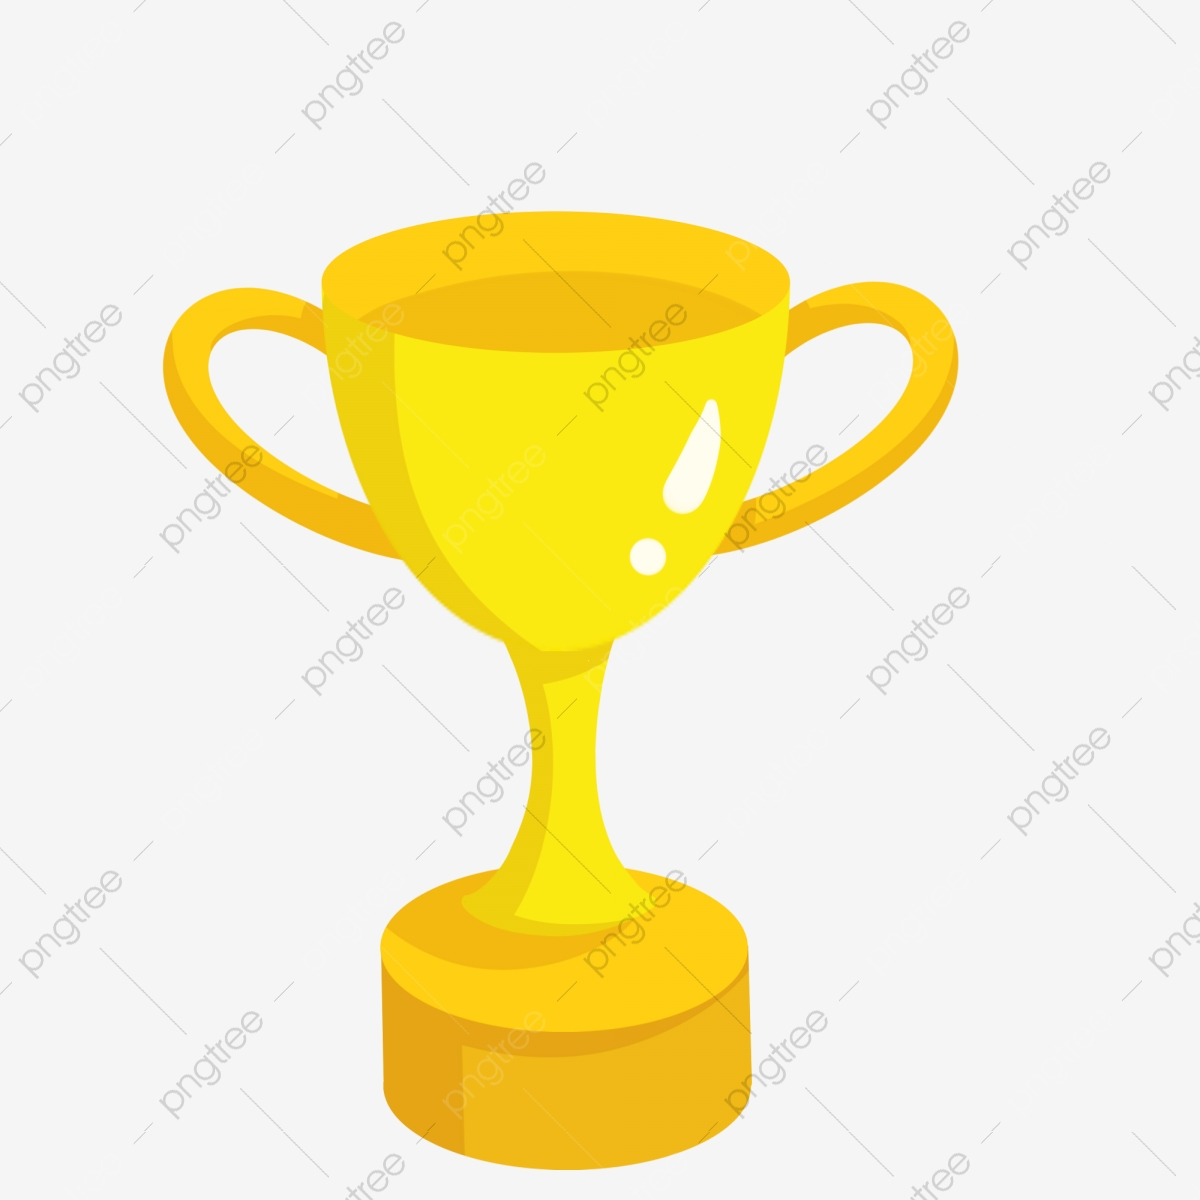 hight resolution of commercial use resource upgrade to premium plan and get license authorization upgradenow gold trophy trophy clipart